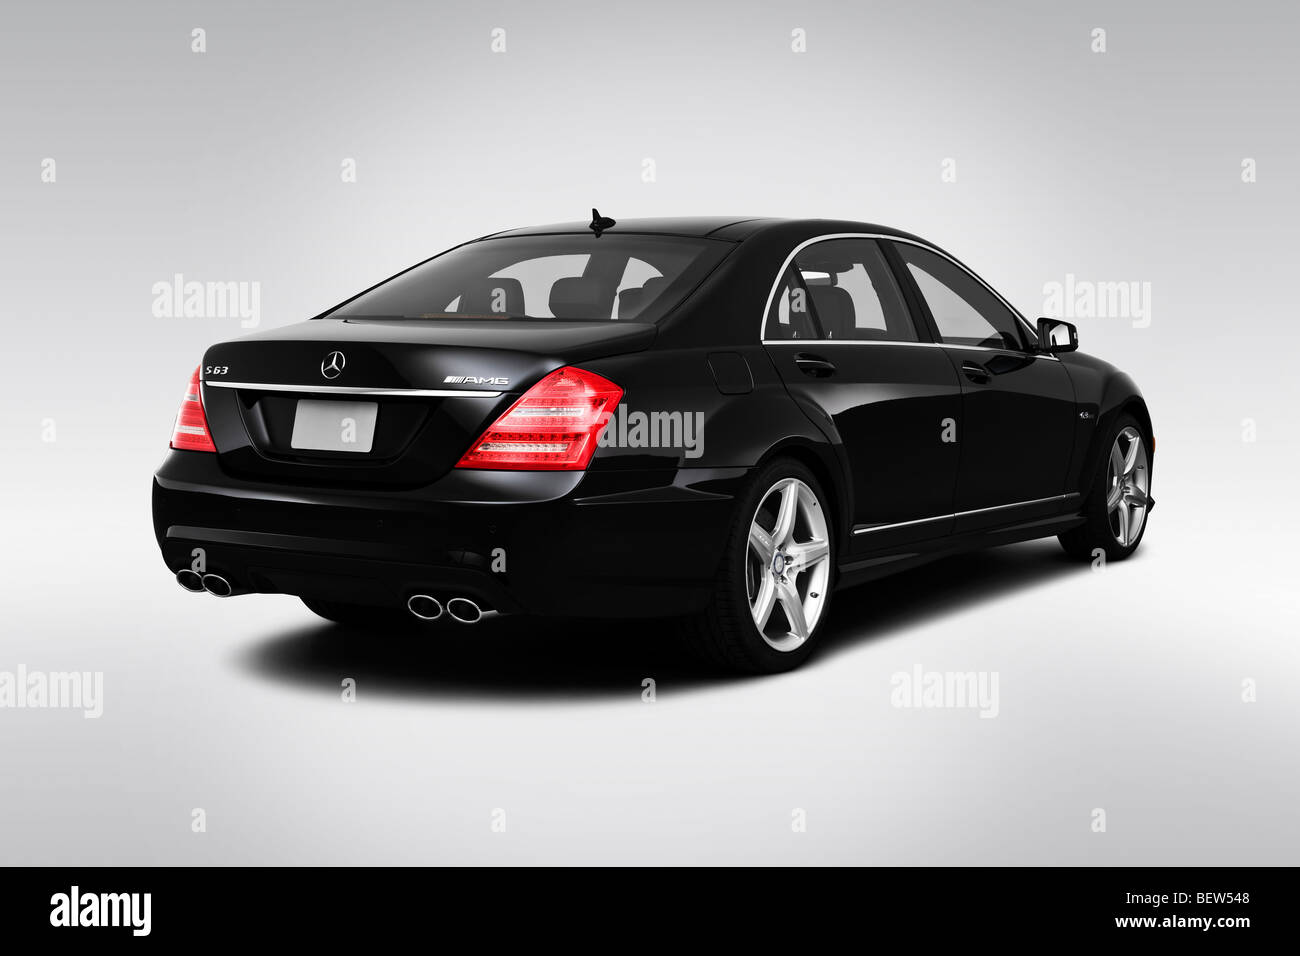 2010 mercedes benz s class s63 amg in black rear angle for 2010 mercedes benz s550